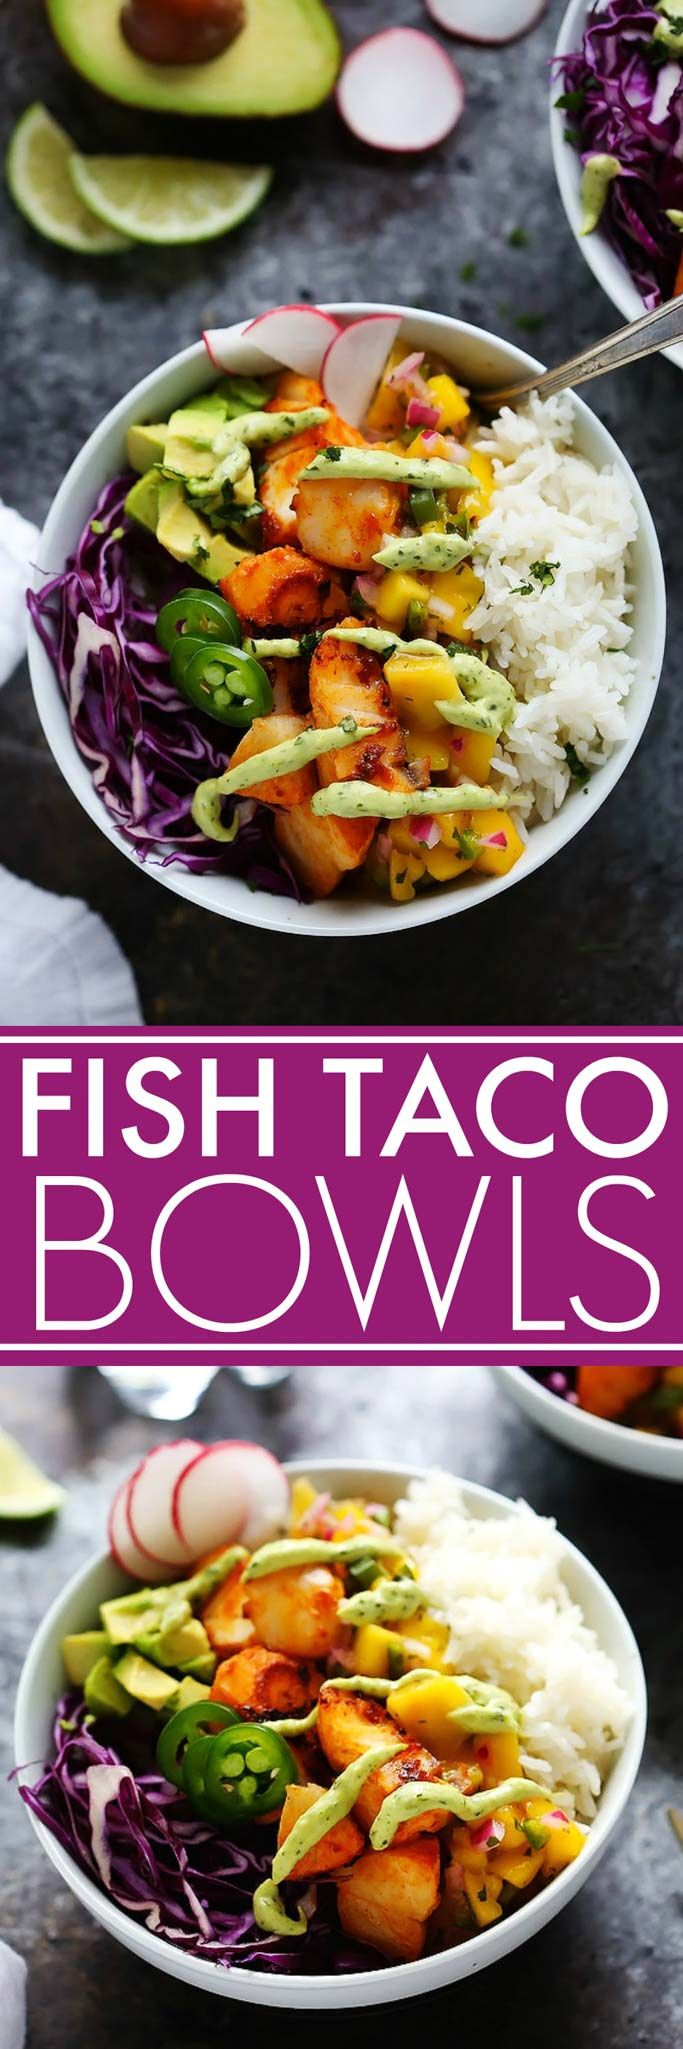 These Fish Taco Bowls with Mango Salsa & Avocado Cream Sauce make a quick and healthy weeknight dinner that's ready in under 30-minutes!   platingsandpairings.com